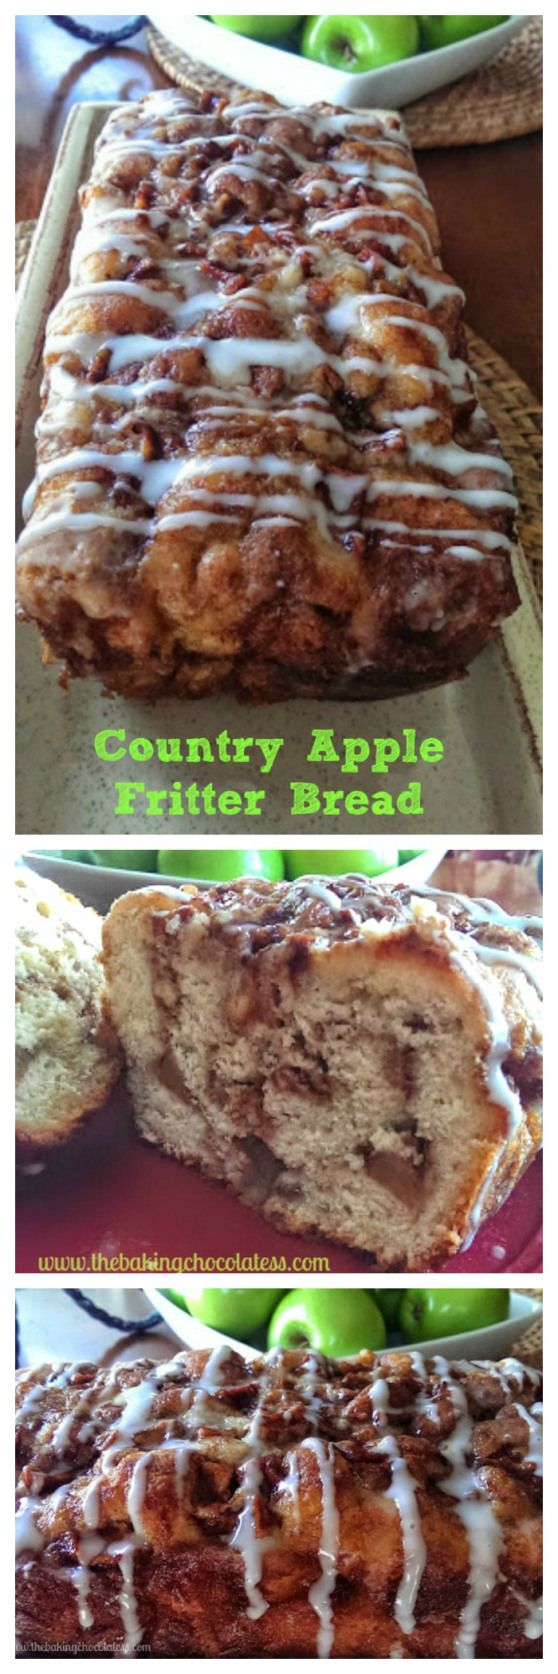 Apple Fritter Bread... not bread at all, but a very sweet cake. Tasty and moist, but very crumbly. Mine looked nothing like the picture and I made it exactly as the recipe directed. The pieces I cut just fell apart, but everyone complimented the taste. Too sweet for me, definitely would leave out the glaze.